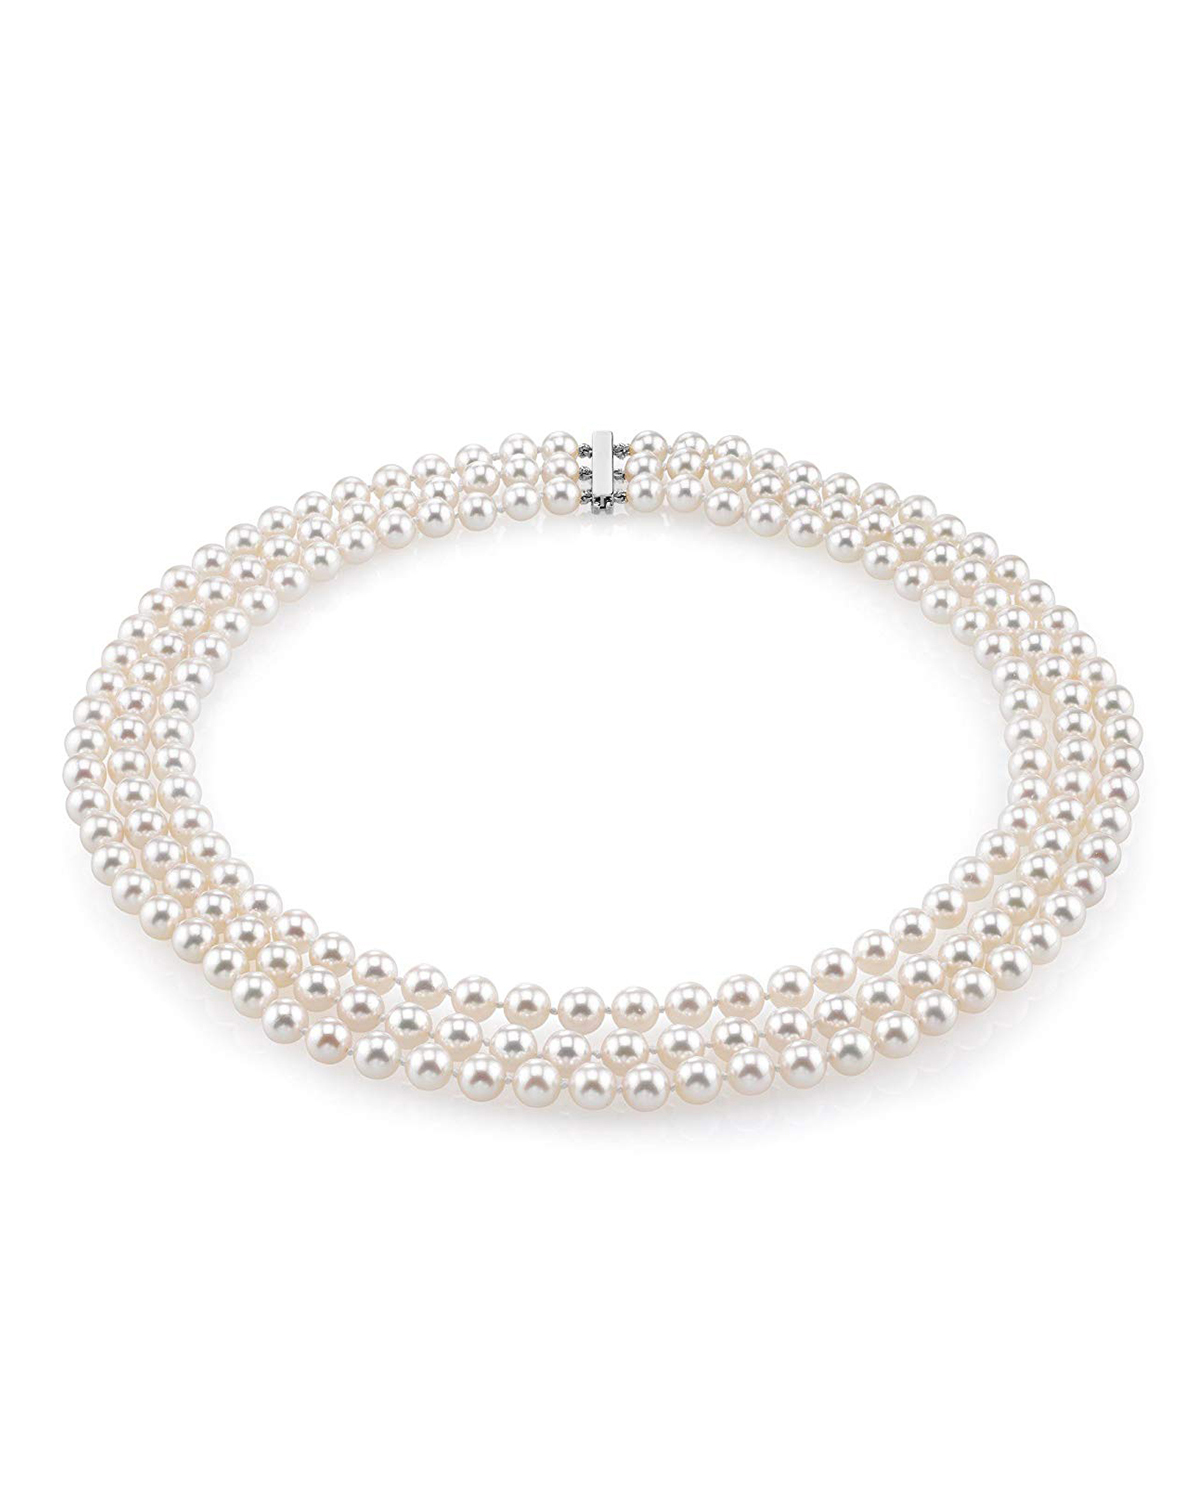 Triple Strand White Akoya Pearl Necklace